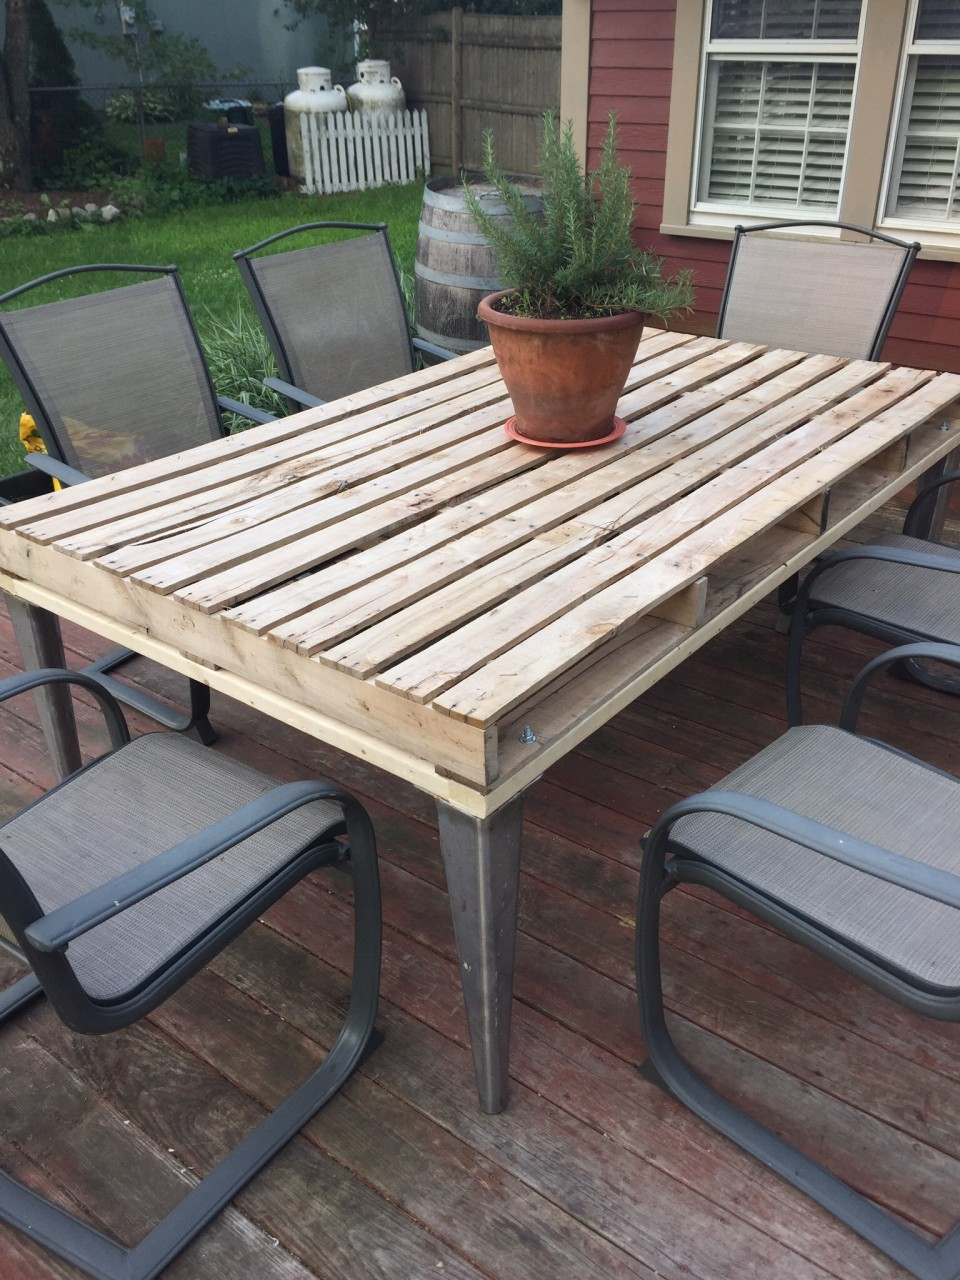 wooden skull chair teal adirondack chairs plastic patio coffee table out of pallets | pallet ideas: recycled / upcycled furniture ...